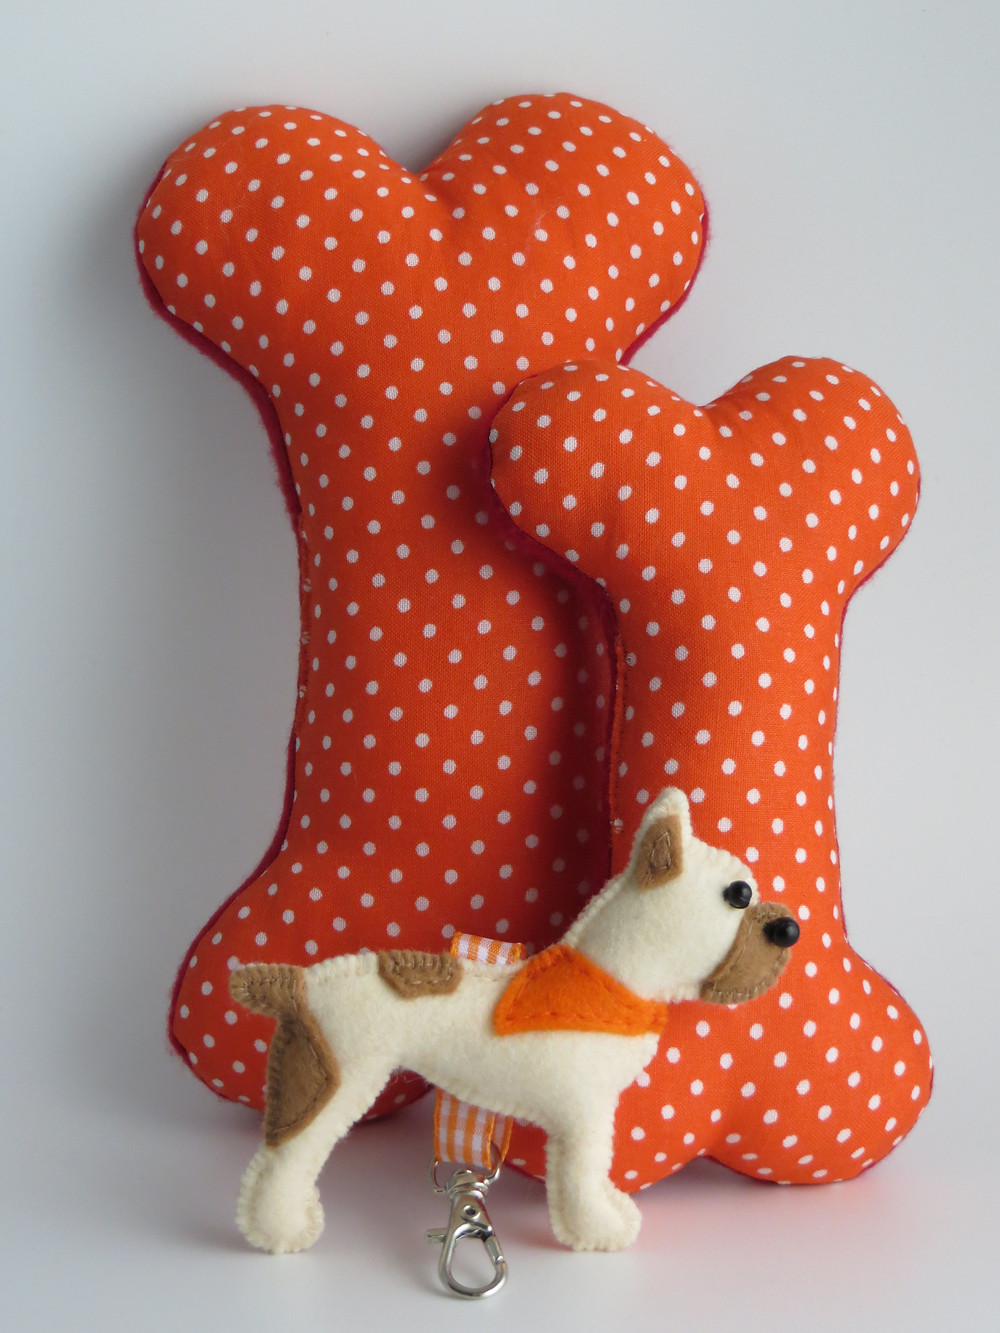 Bespoke gifts for home & hound!